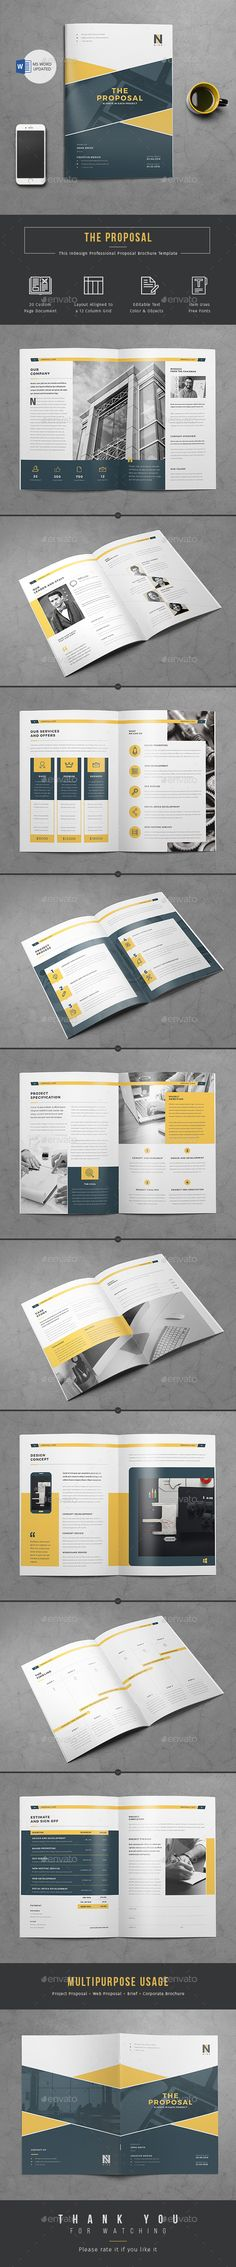 Proposal InDesign/Word Template, 20 page Professional Business Proposal Template is the best suitable choice to work with.